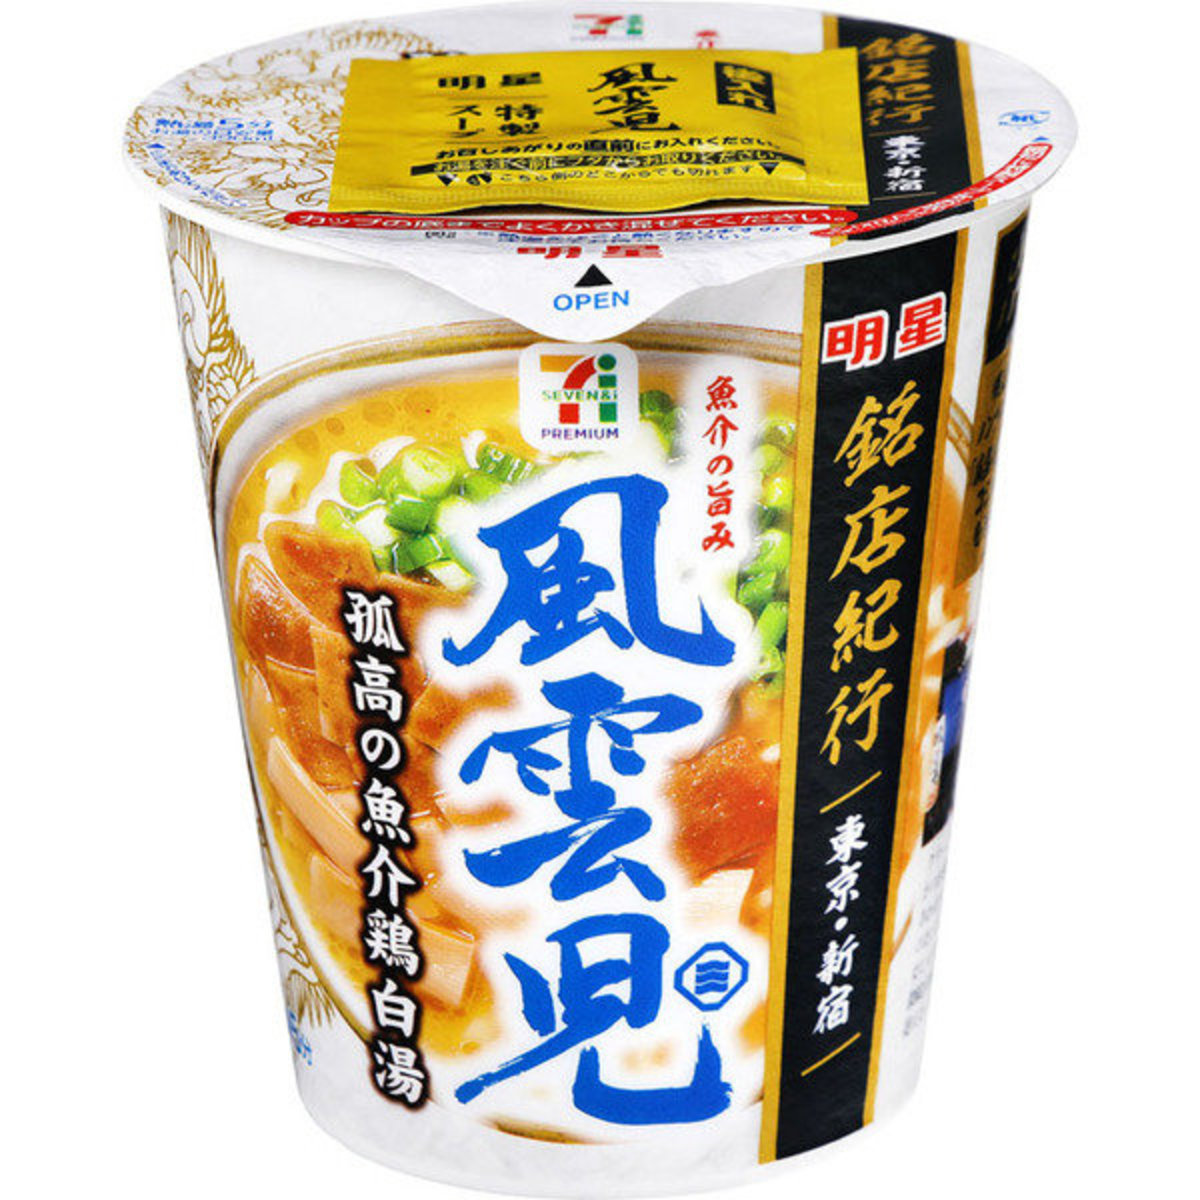 Japan Seven Premium Shinjuku Fuunji Seafood Chicken White Soup Noodles x 6pcs